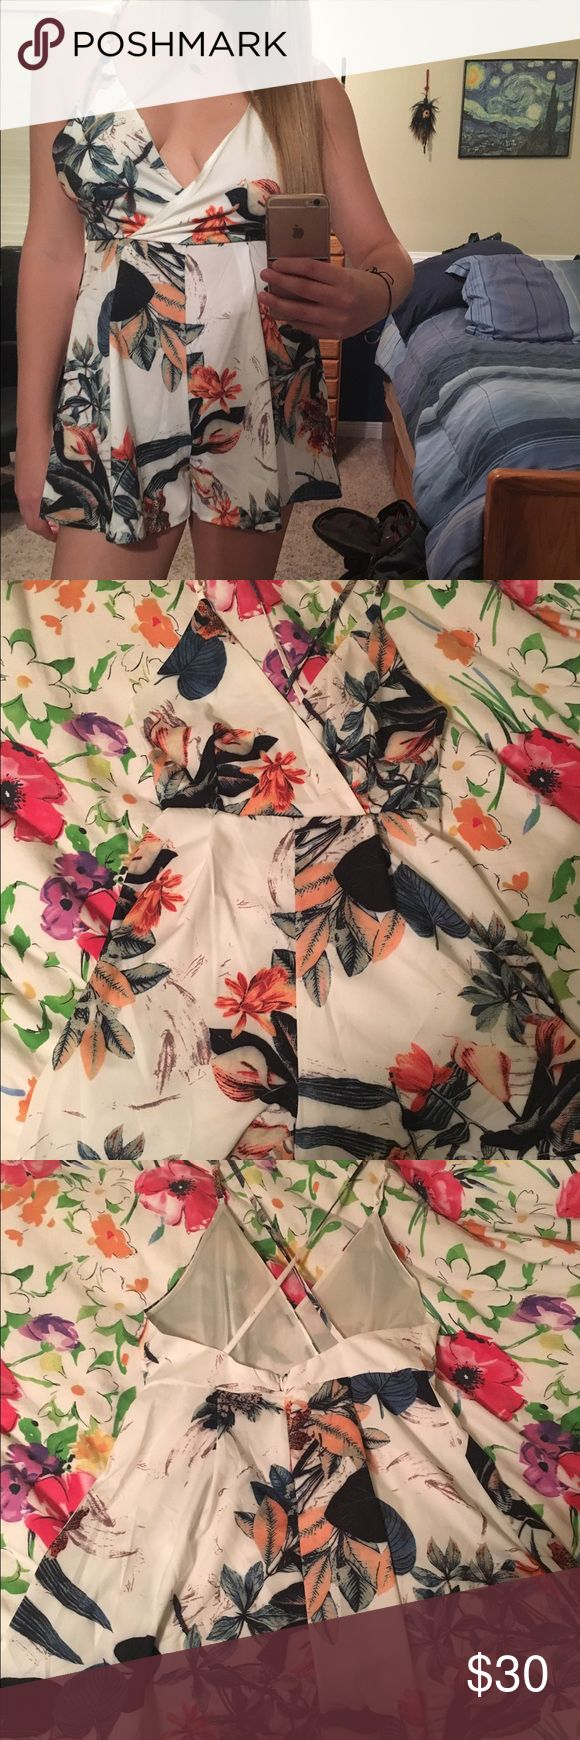 Print Romper NWOT never been worn Hawaiian/floral print romper. Size medium! Got it off an Australian website but it's a little small for me- fits true to size. Super cute and perfect for summer! Criss cross back with adjustable straps :) ROMWE Pants Jumpsuits & Rompers